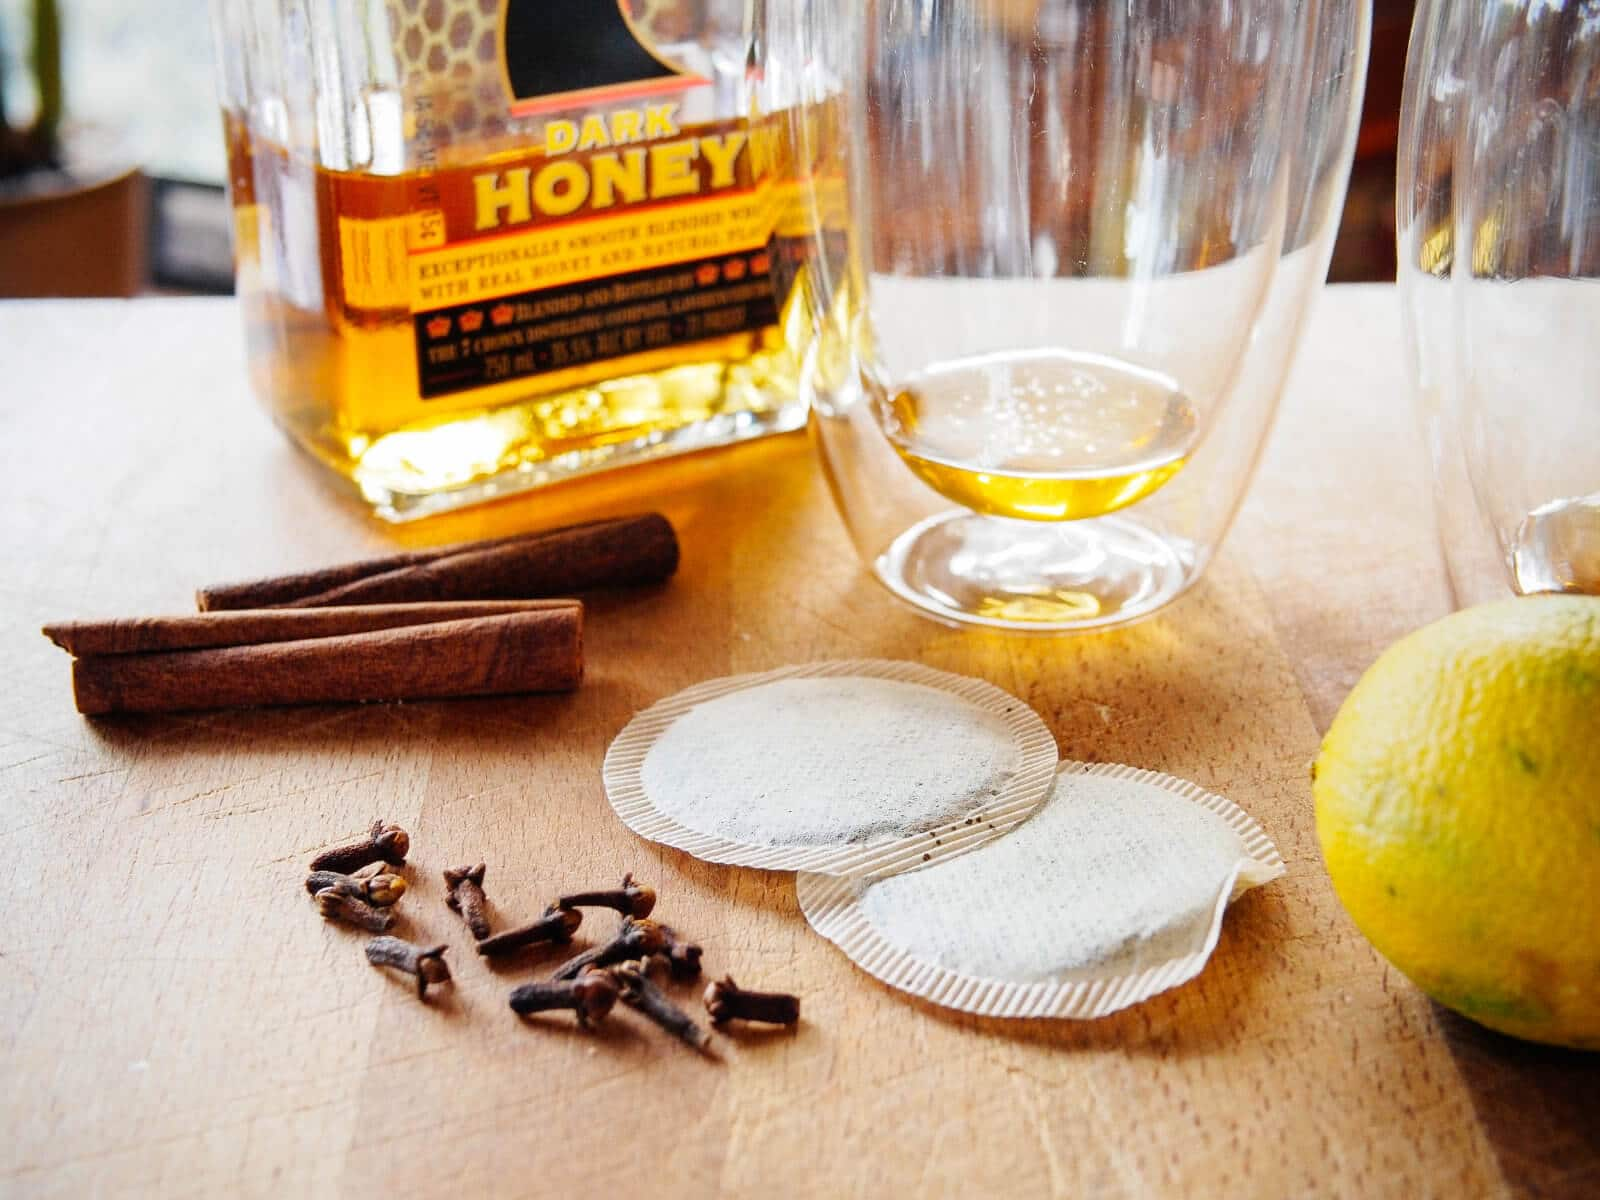 Float a clove-studded lemon in your hot toddy